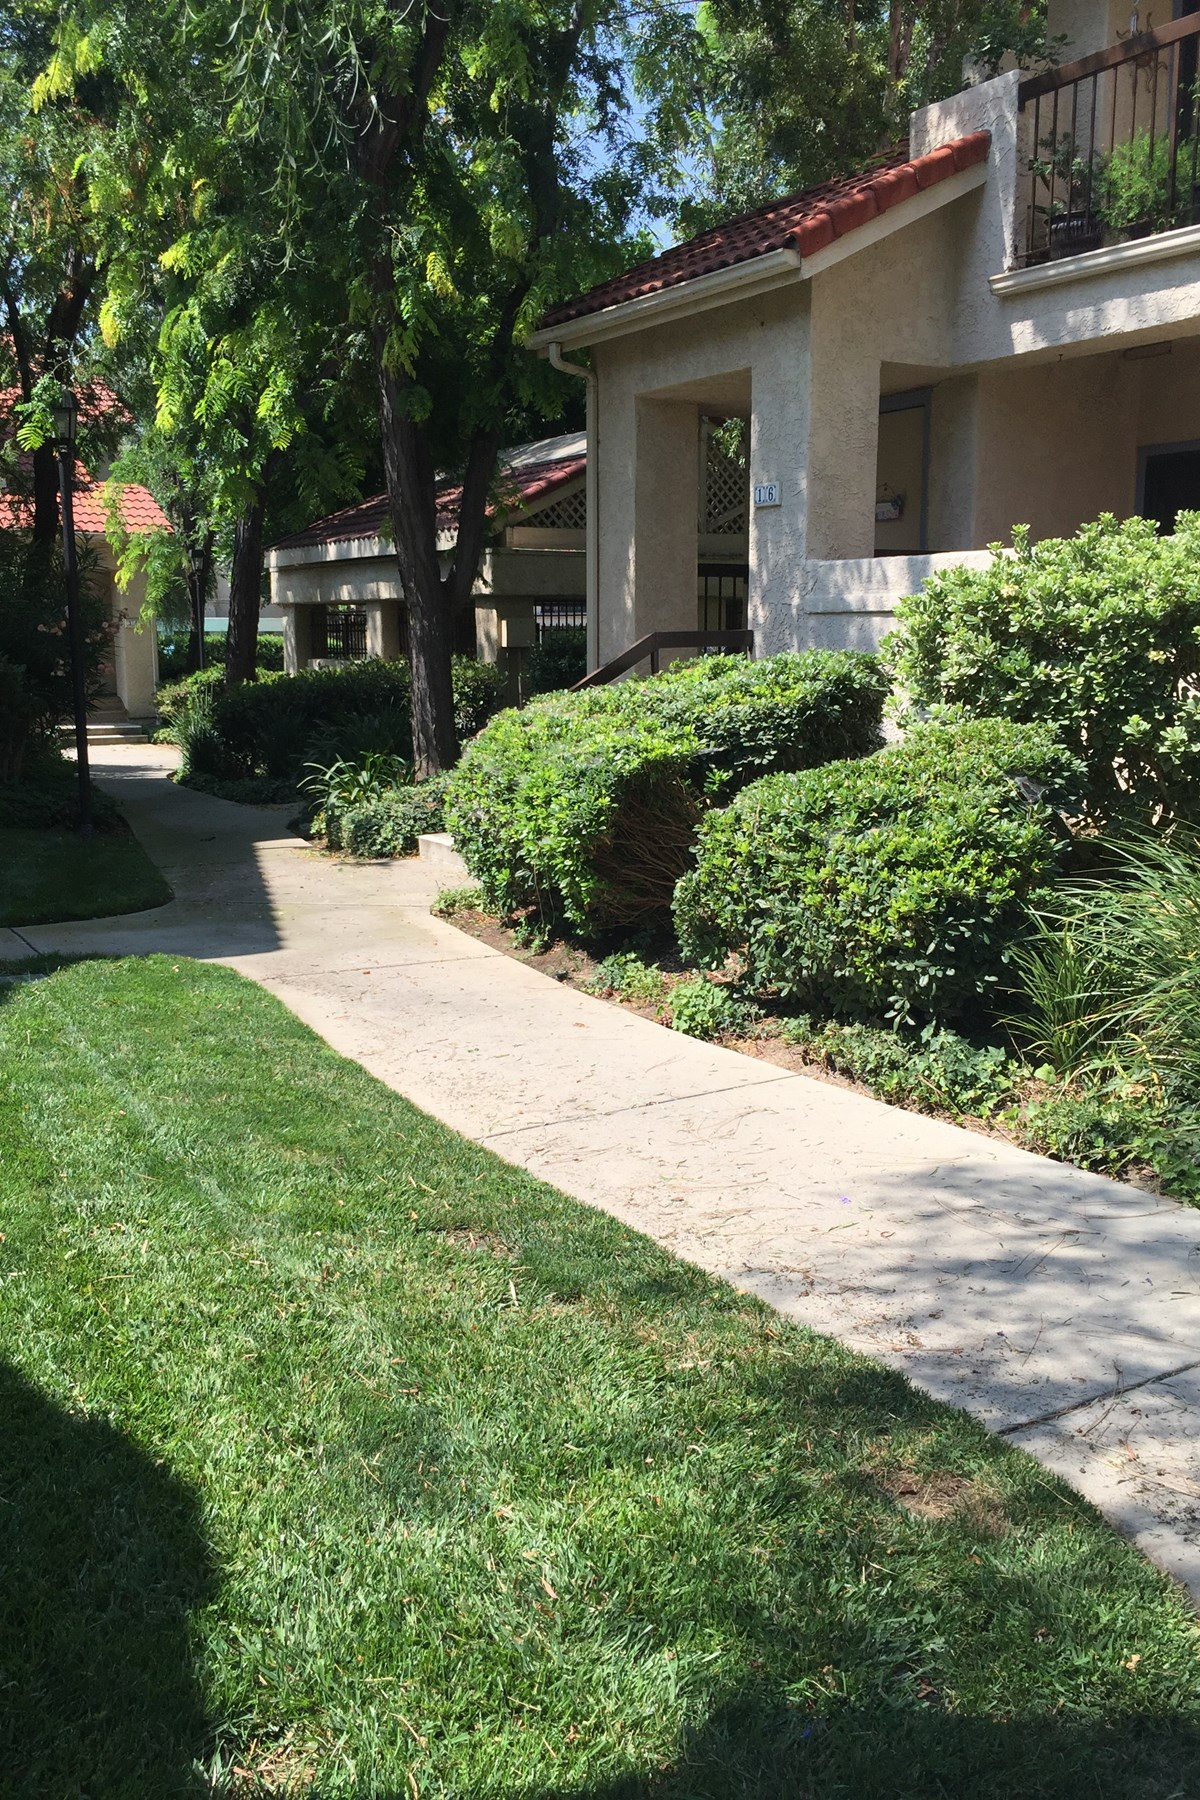 Condominium for Sale at Lovely Simi Valley Condo 2376 Archwood Lane #22 Simi Valley, California, 93063 United States